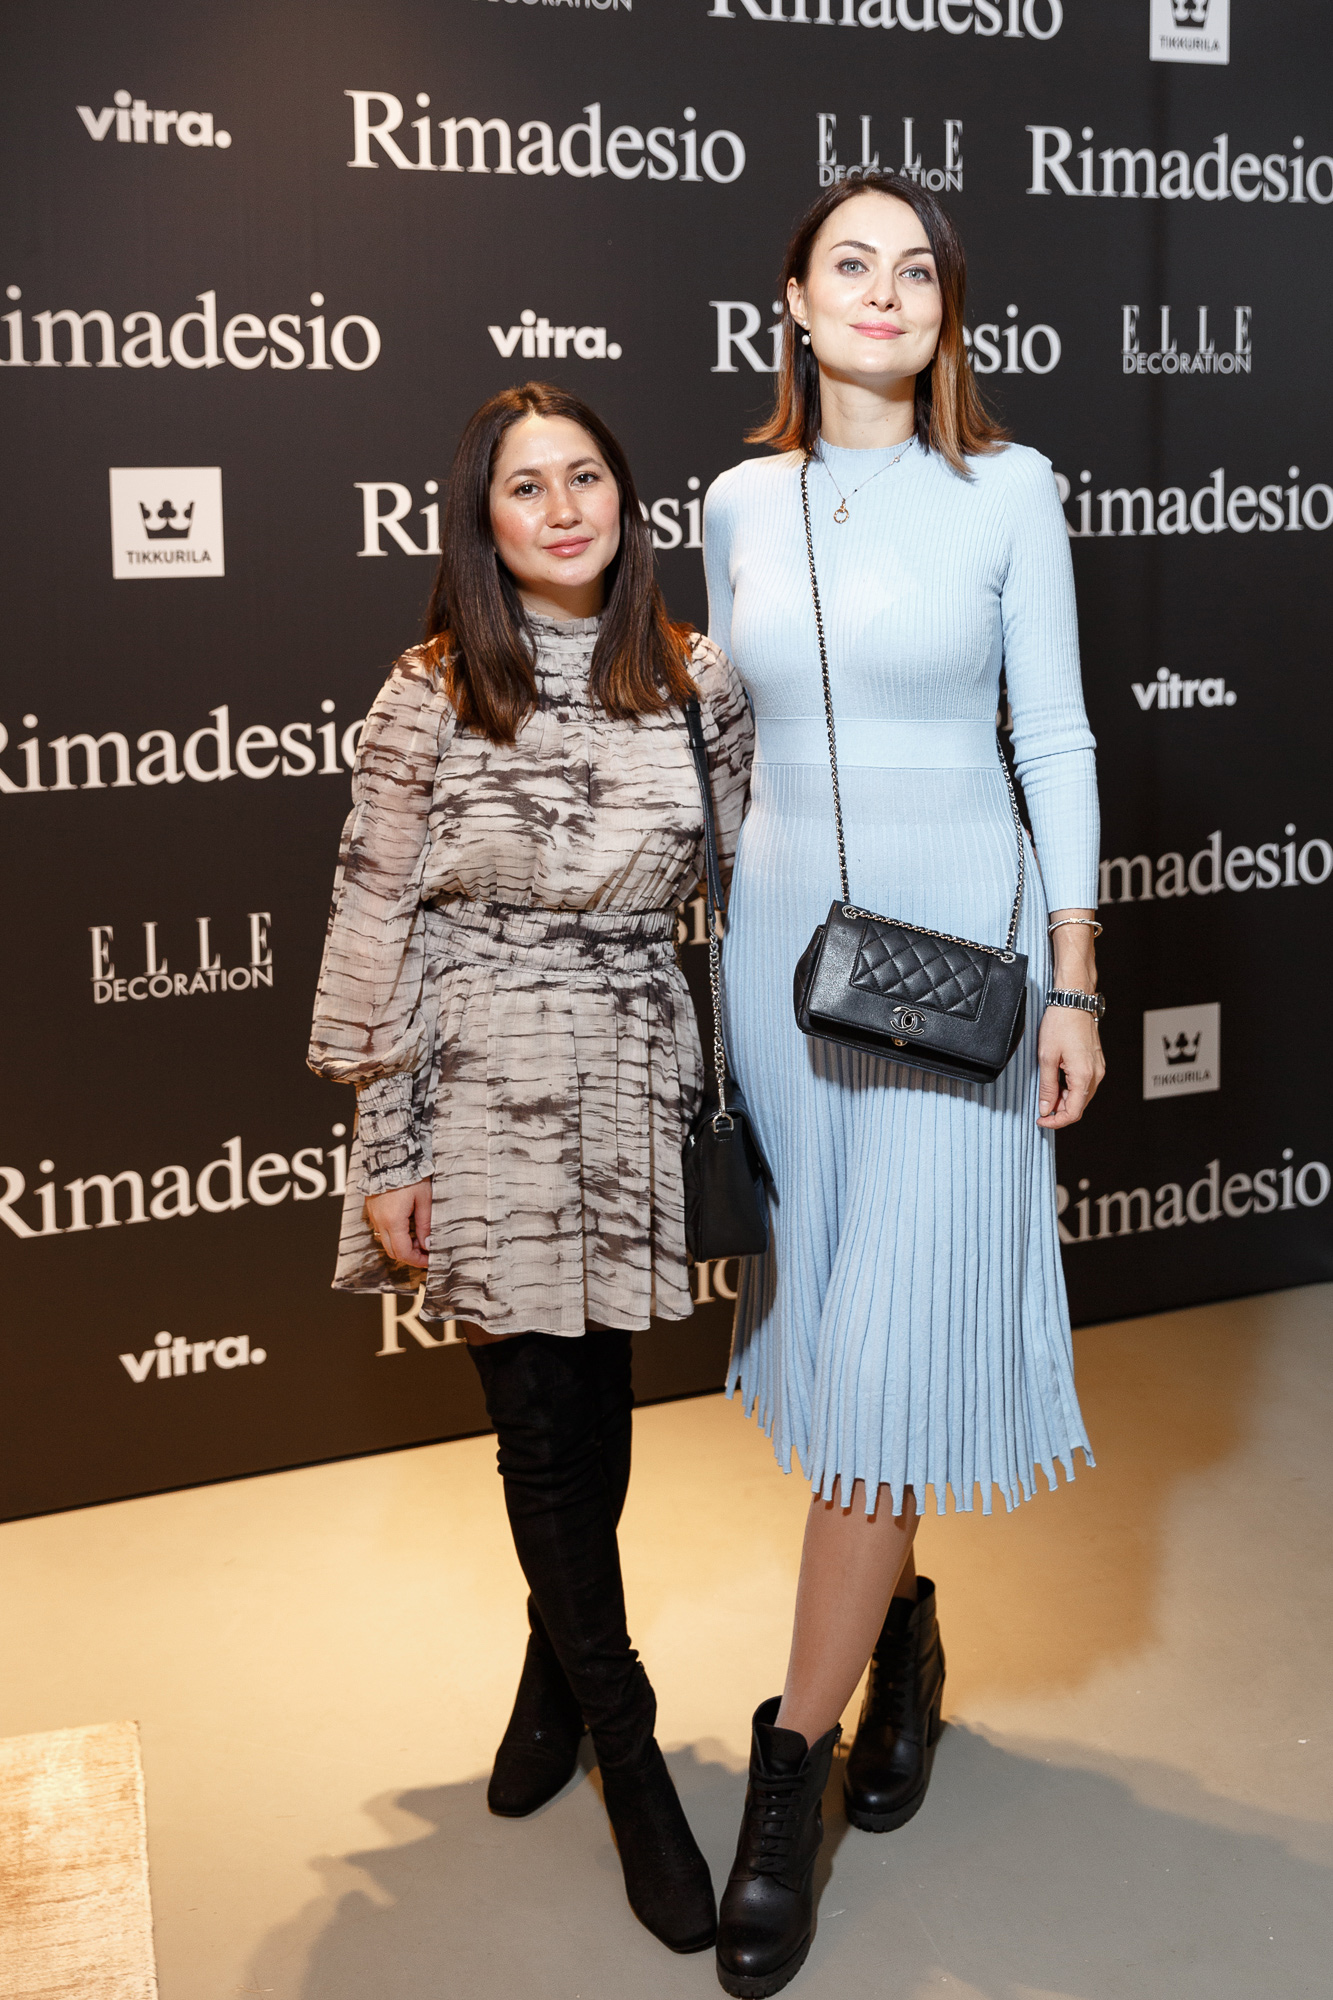 rimadesio-moscow-49